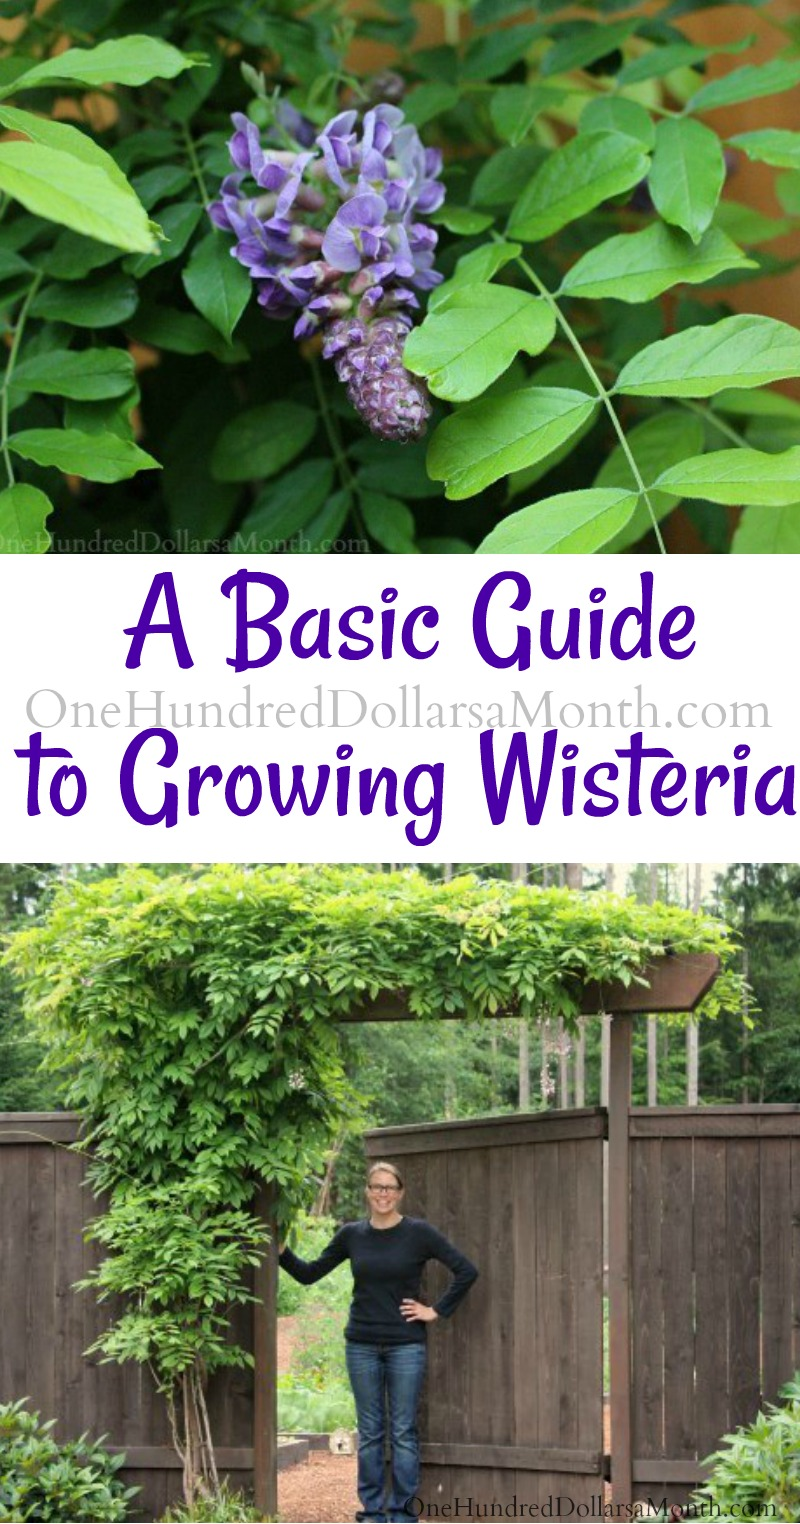 Basic Guide To Growing Wisteria One Hundred Dollars A Month